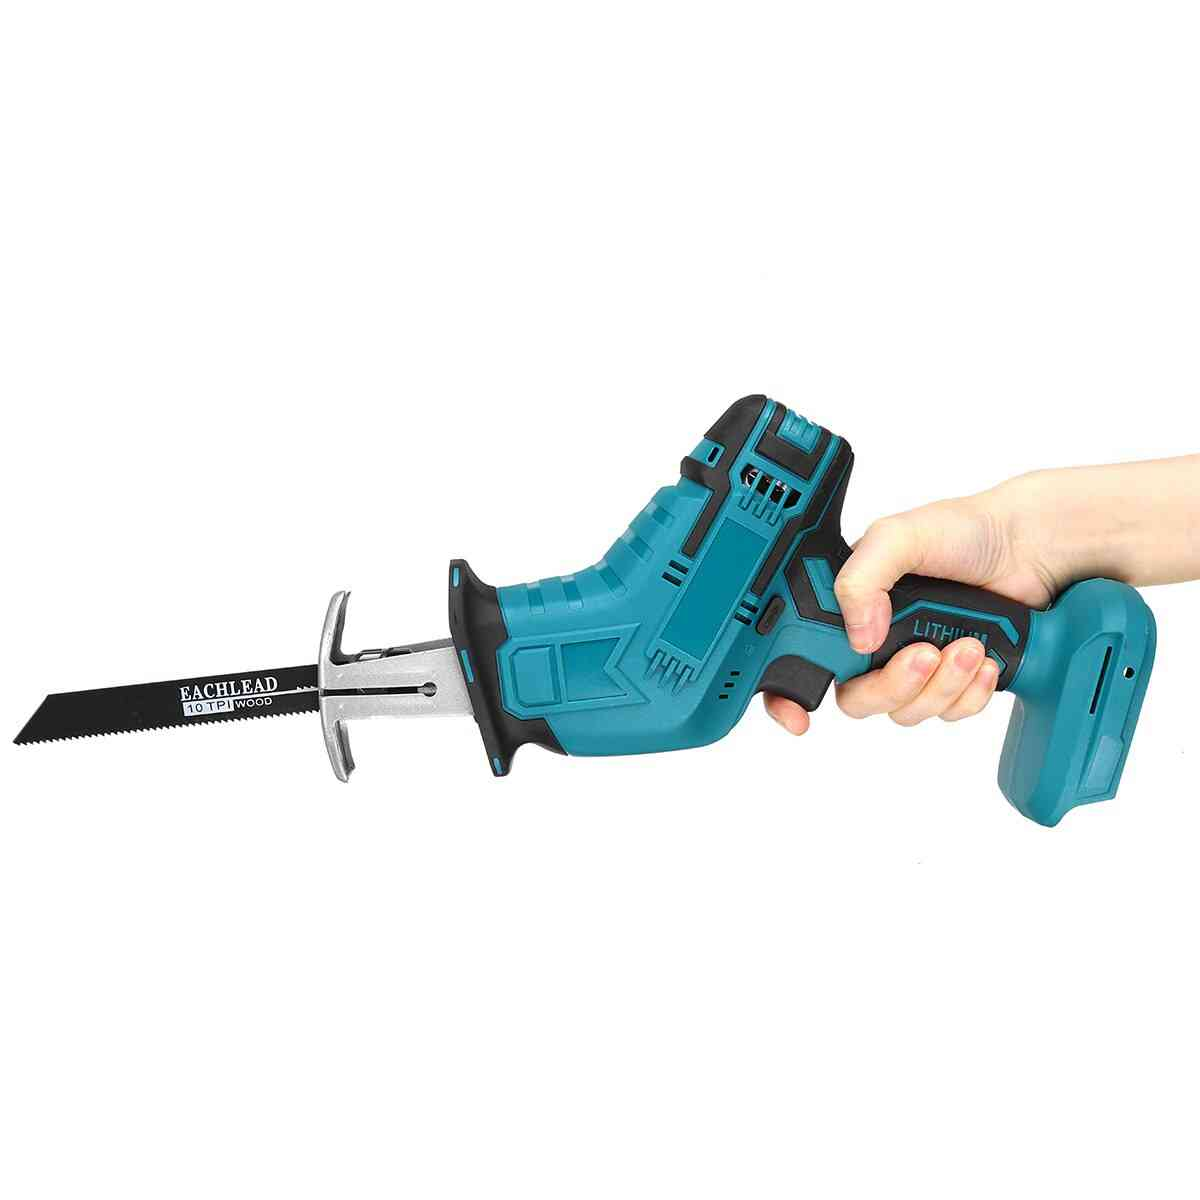 Reciprocating Saw Cordless Electric Saw For Wood Metal Plastic Cutting